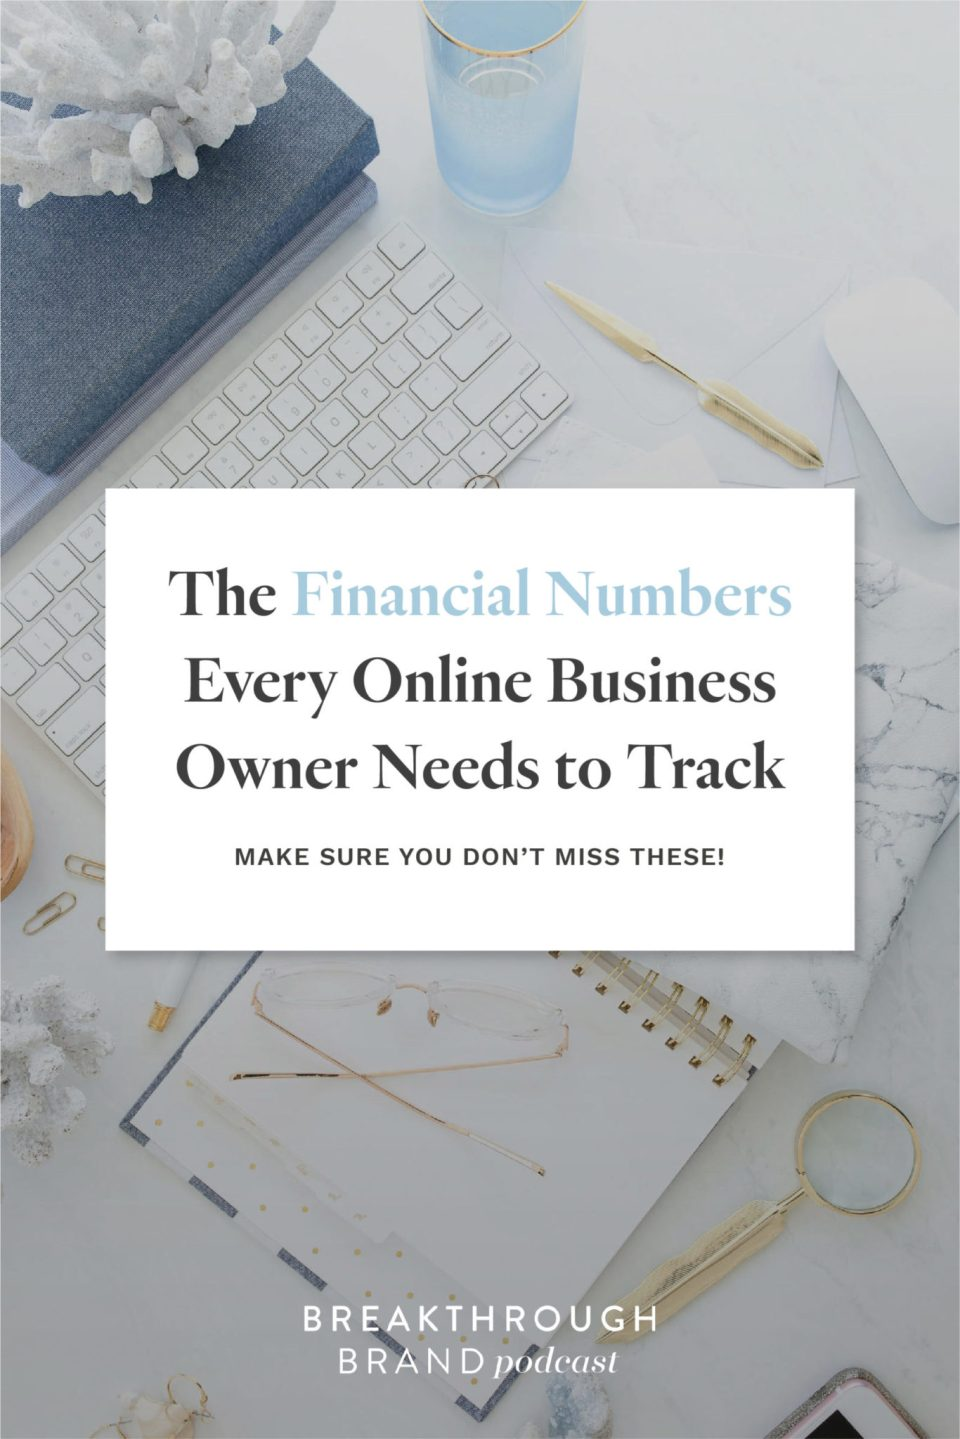 Don't miss these financial numbers that every online business owner needs to be tracking with Elizabeth McCravy on the Breakthrough Brand Podcast.